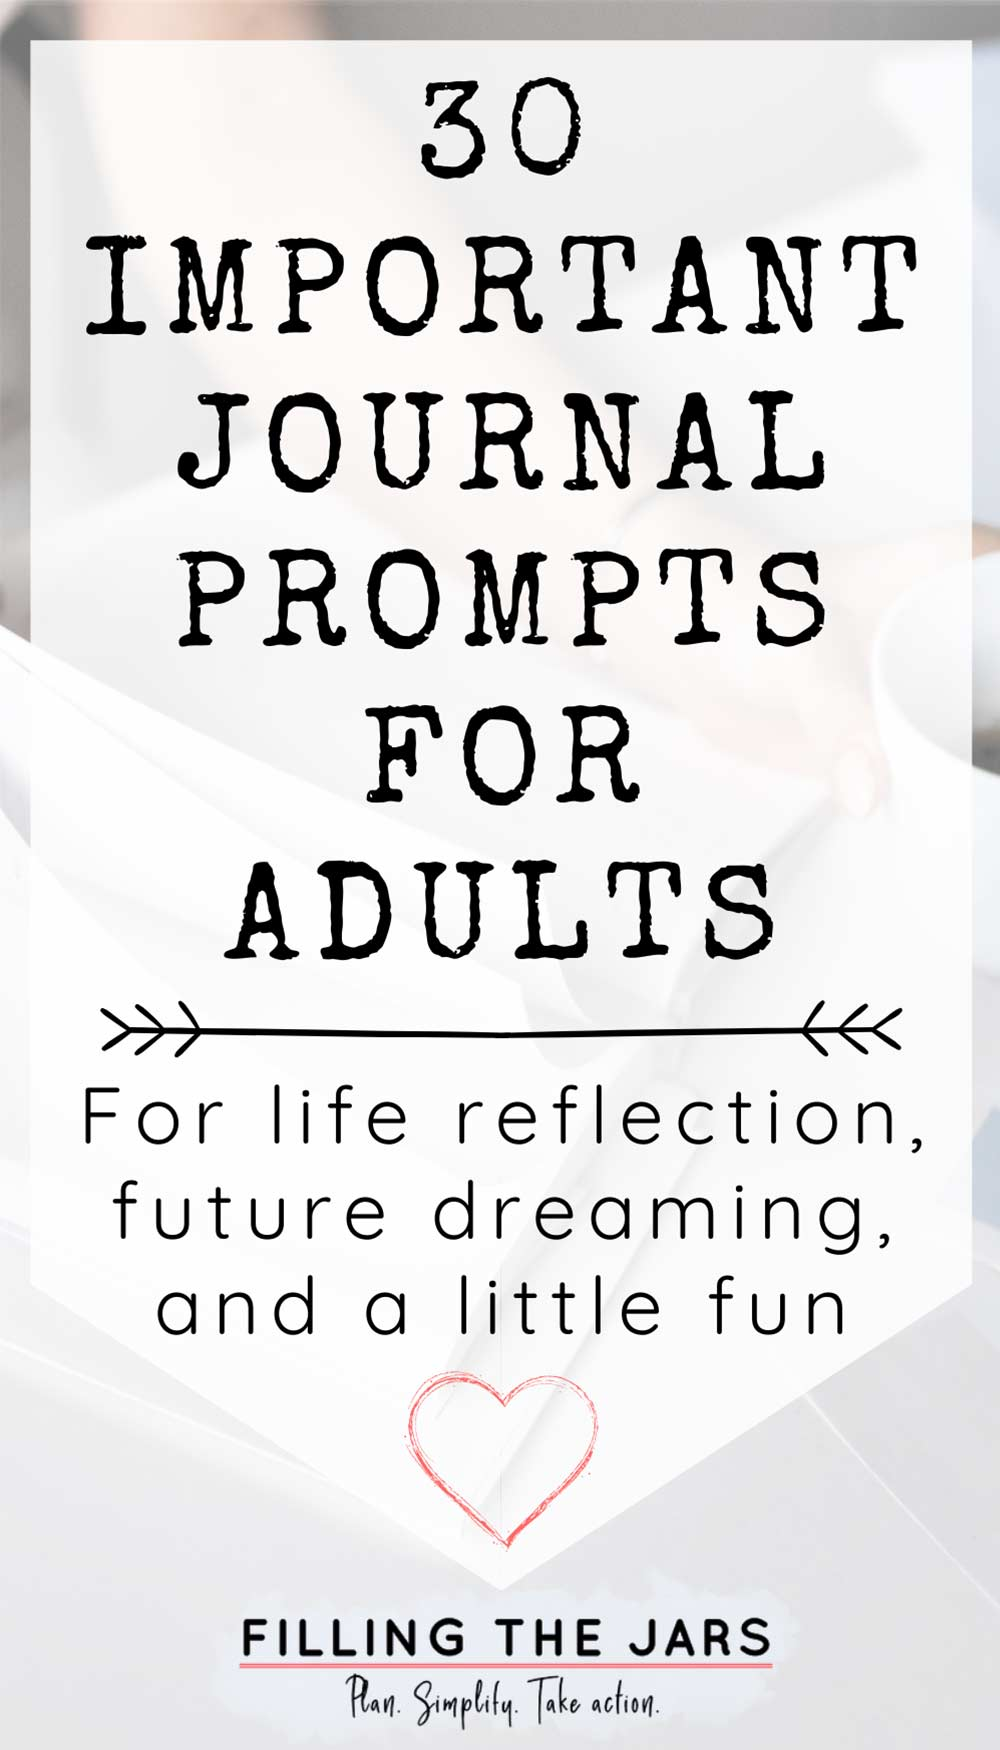 Text 30 important journaling prompts for adults on white background over image of adult woman sitting at white desk and touching coffee cup while flipping through journal.